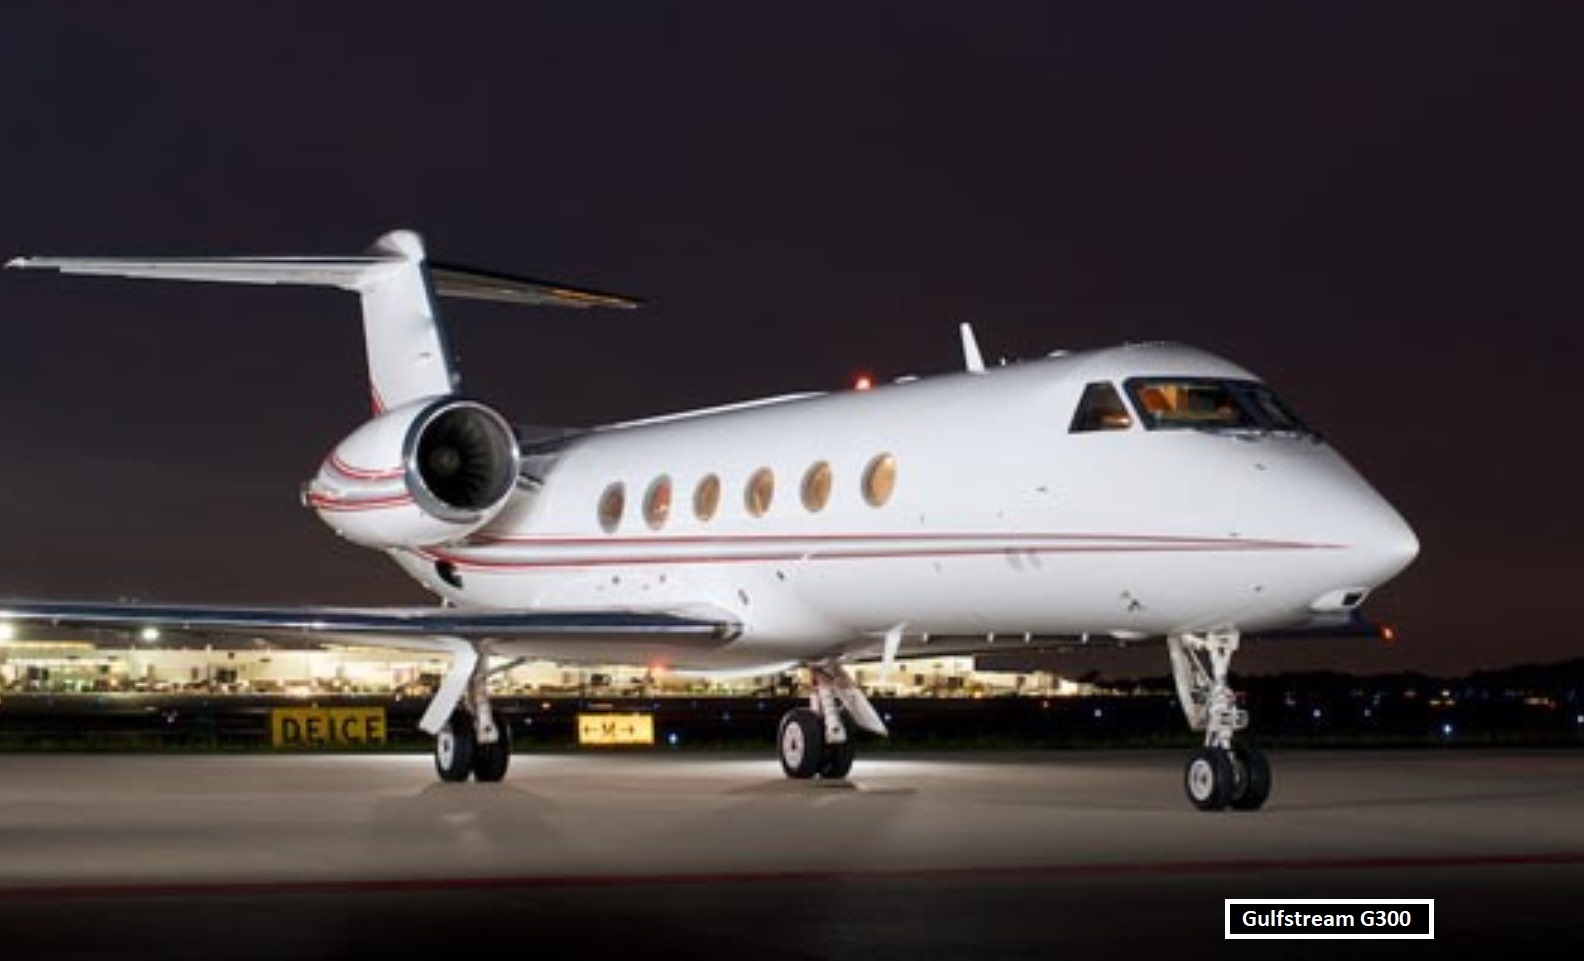 Alexis Sanchez private jet cost $9.5 million